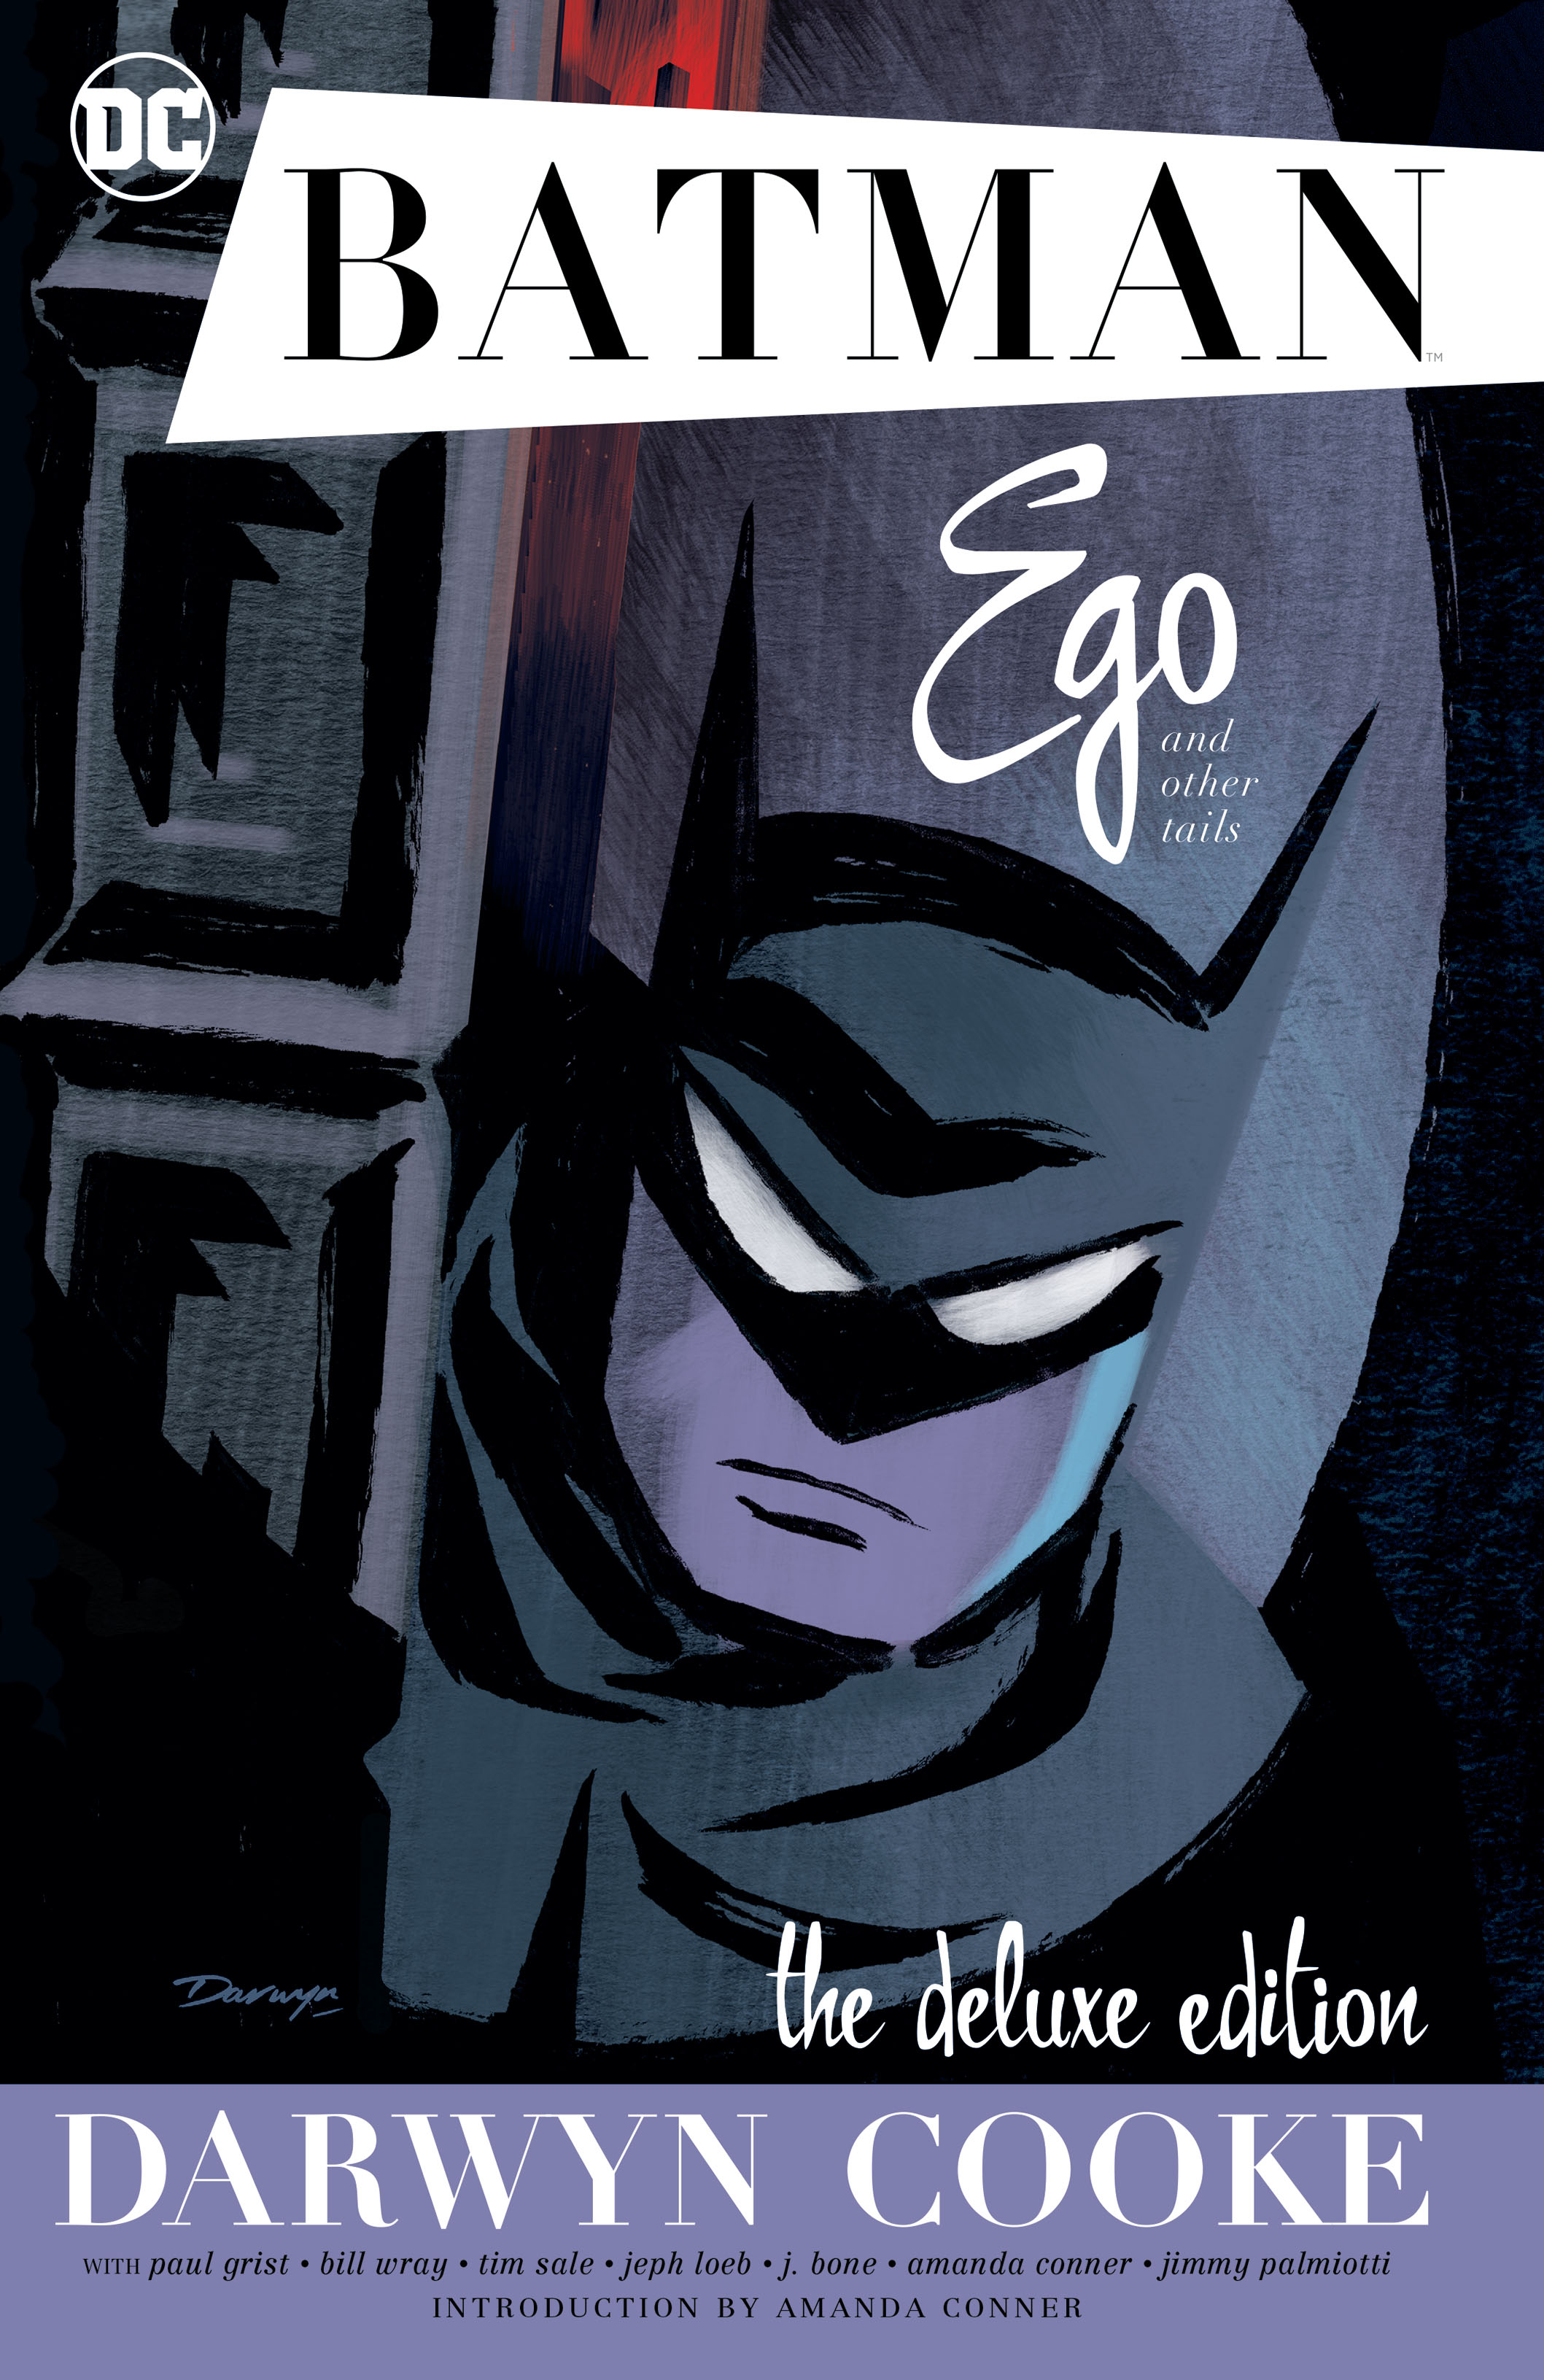 Batman: Ego and Other Tails- The Deluxe Edition review   Batman News